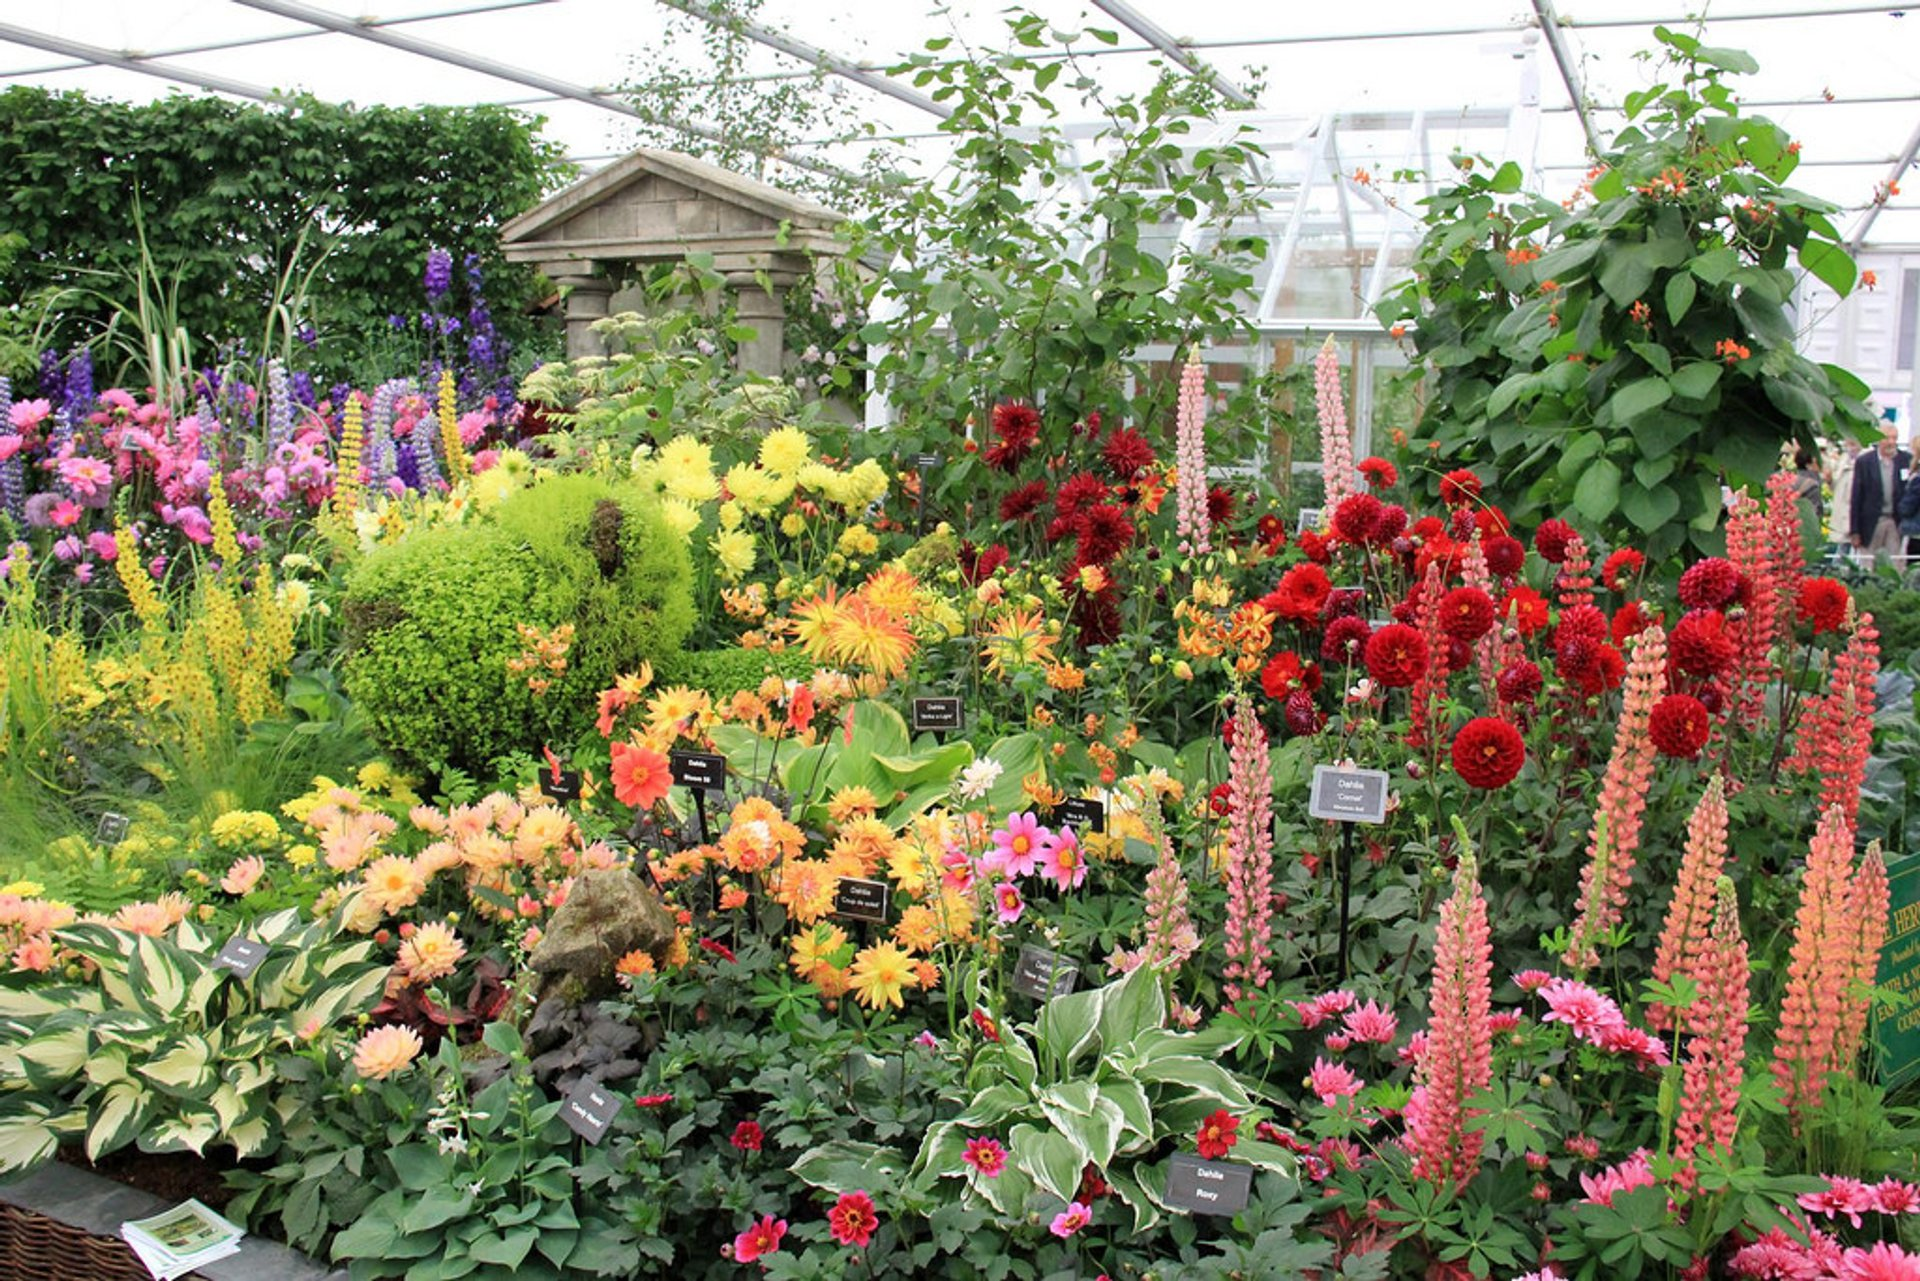 Best time for RHS Chelsea Flower Show in London 2020